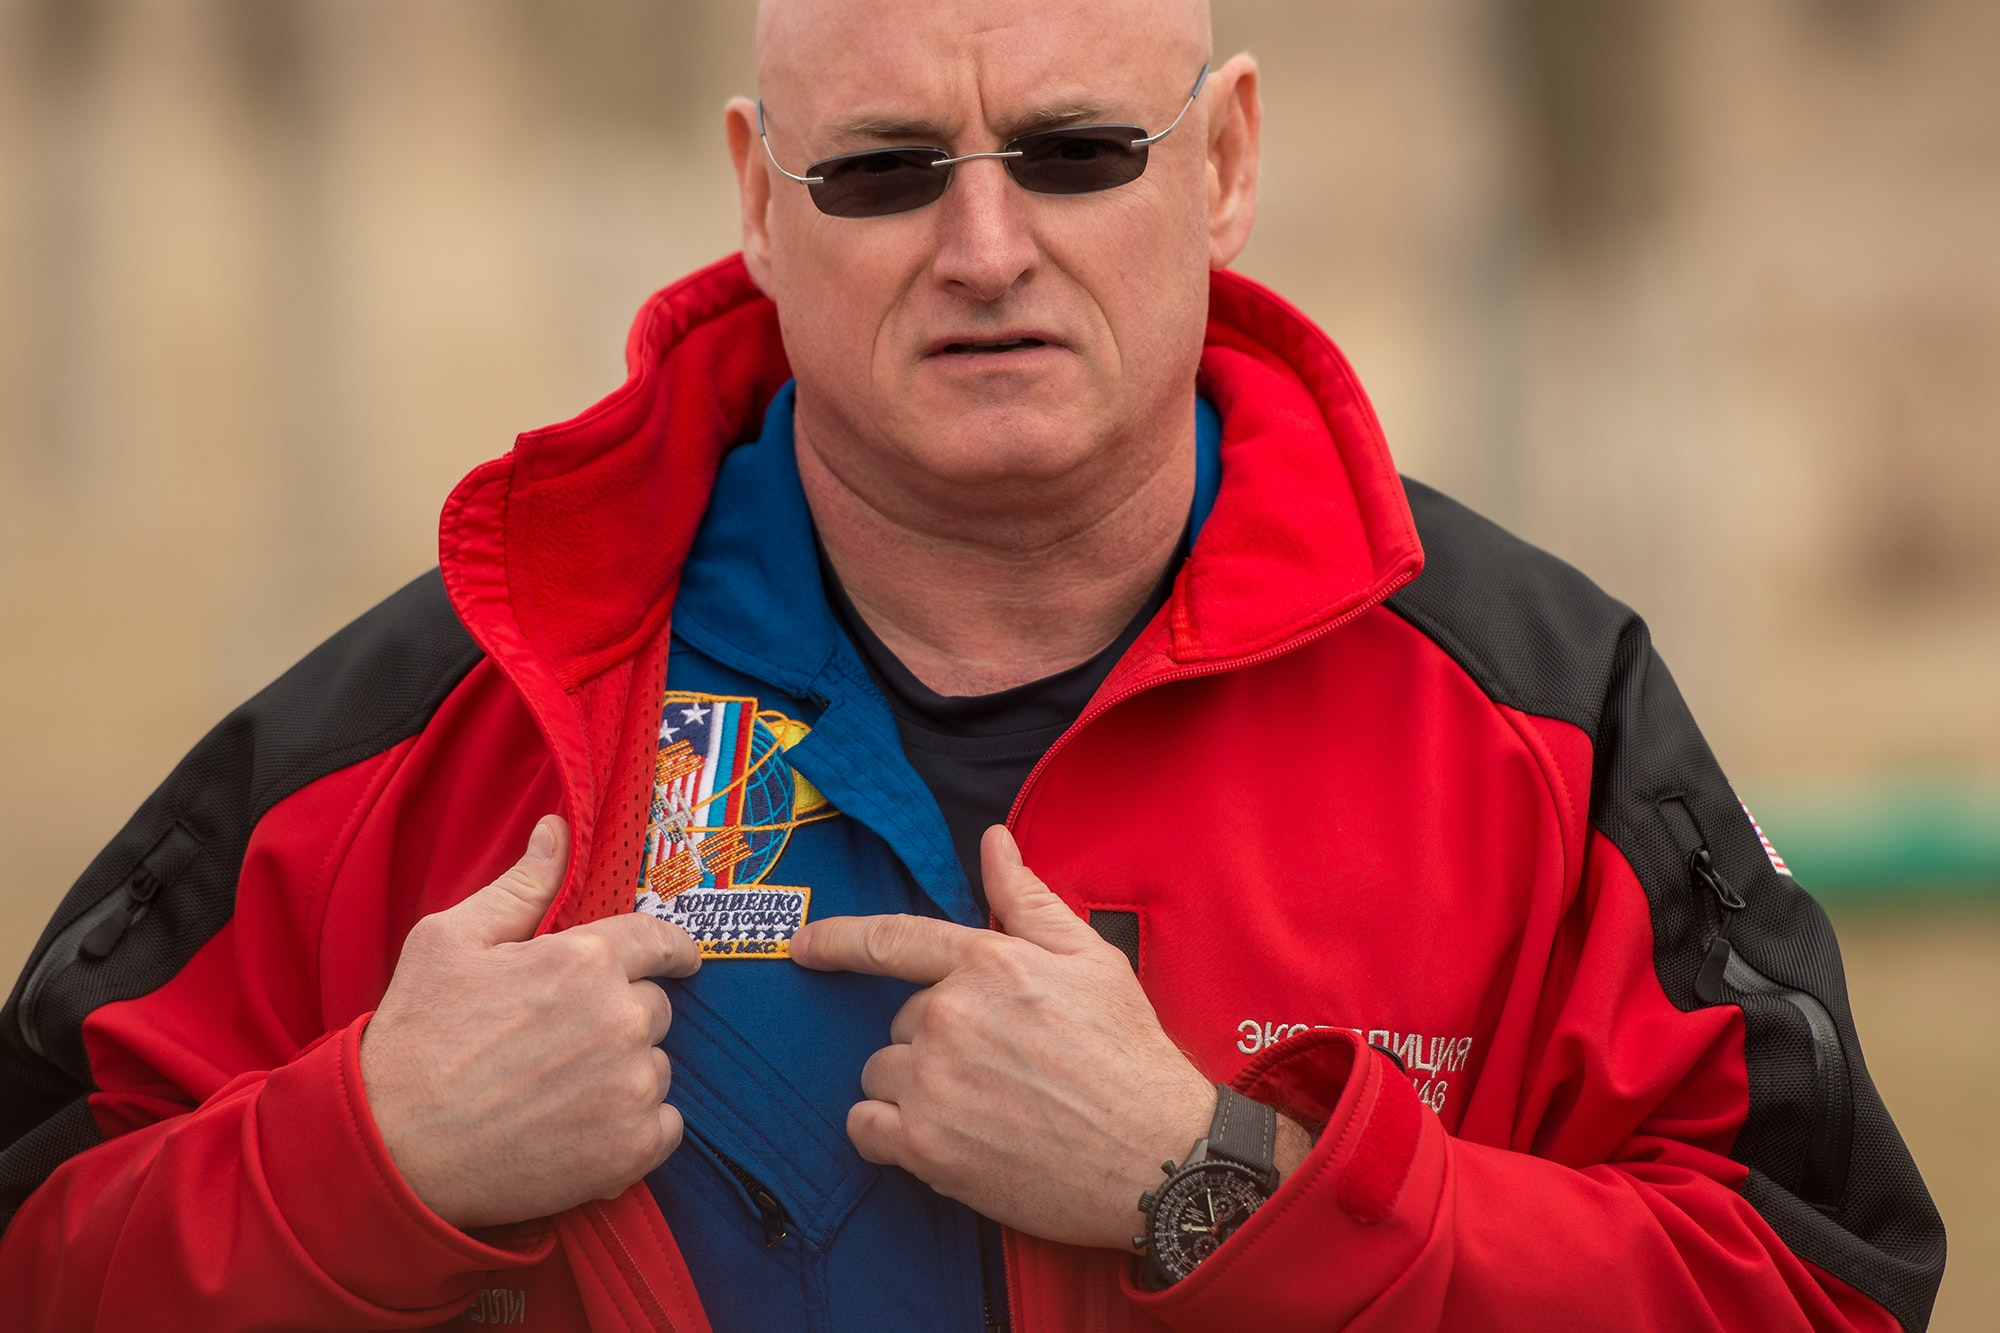 Scott Kelly Breitling Navitimer Annual Calendar The Watches Worn By NASA Astronaut Scott Kelly, Holder Of New U.S. Spaceflight Endurance Record The Watches Worn By NASA Astronaut Scott Kelly, Holder Of New U.S. Spaceflight Endurance Record 04 Expedition 43 Media Day 201503210039HQ